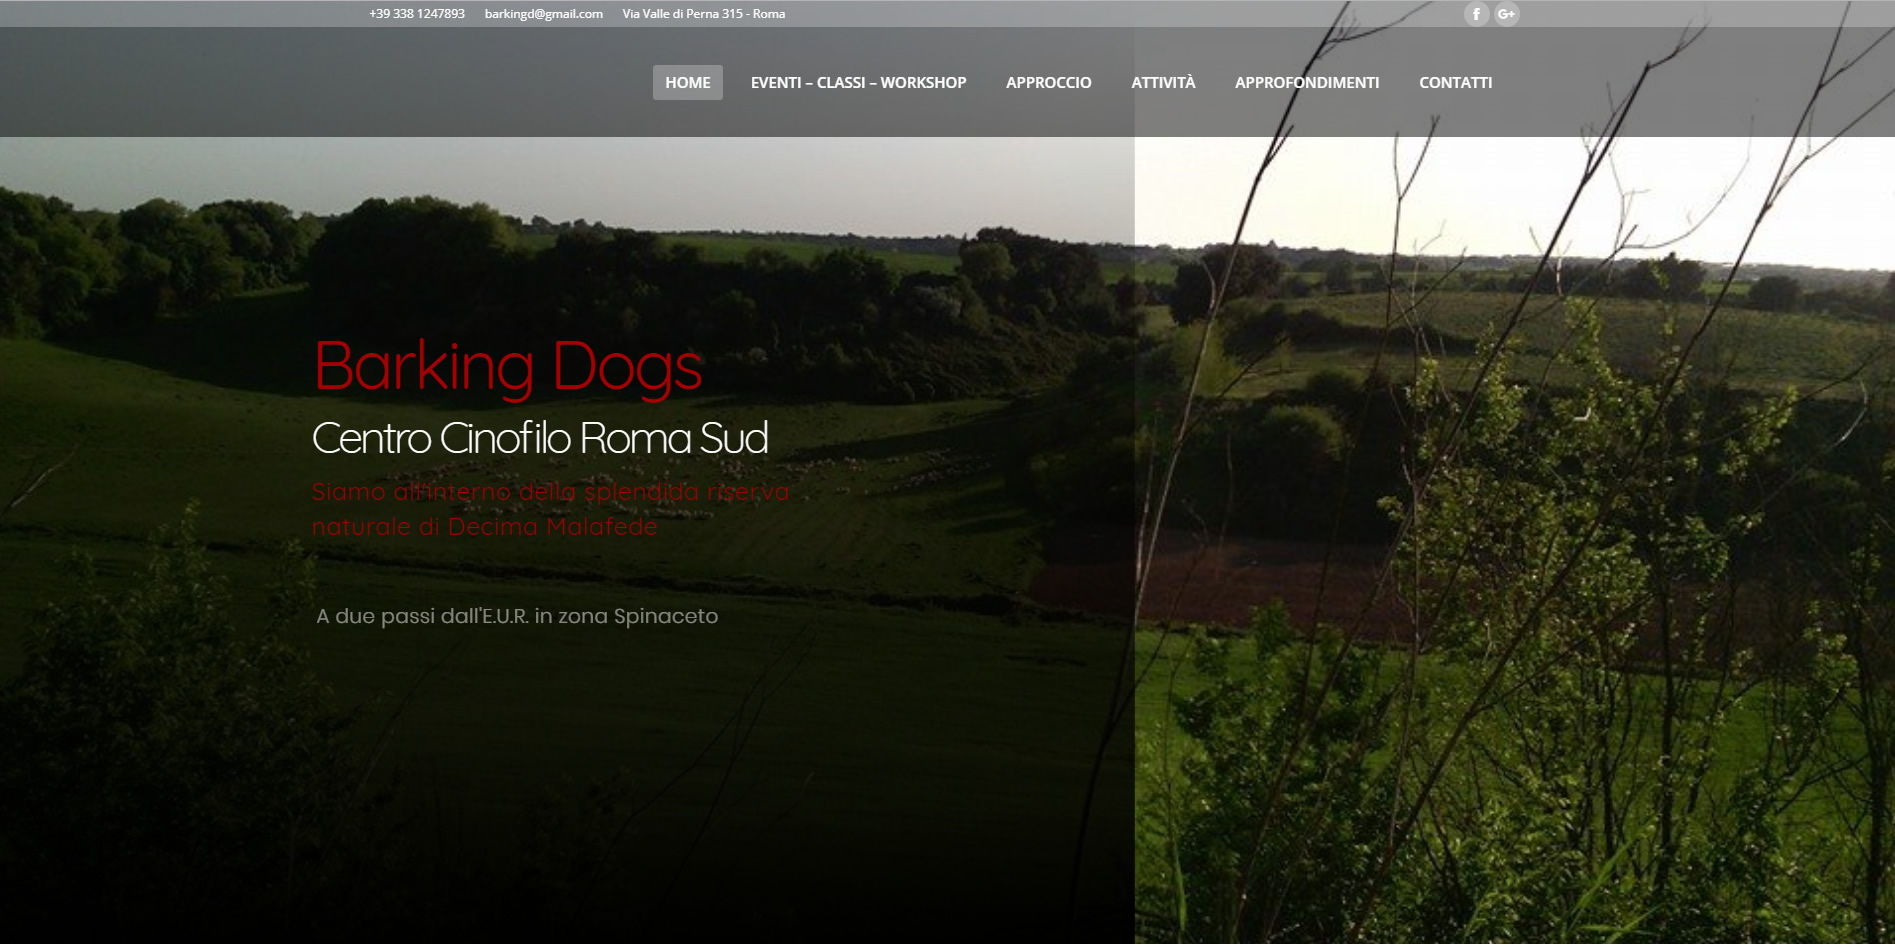 Braking Dogs sito WordPress e Social Media agenzia web roma